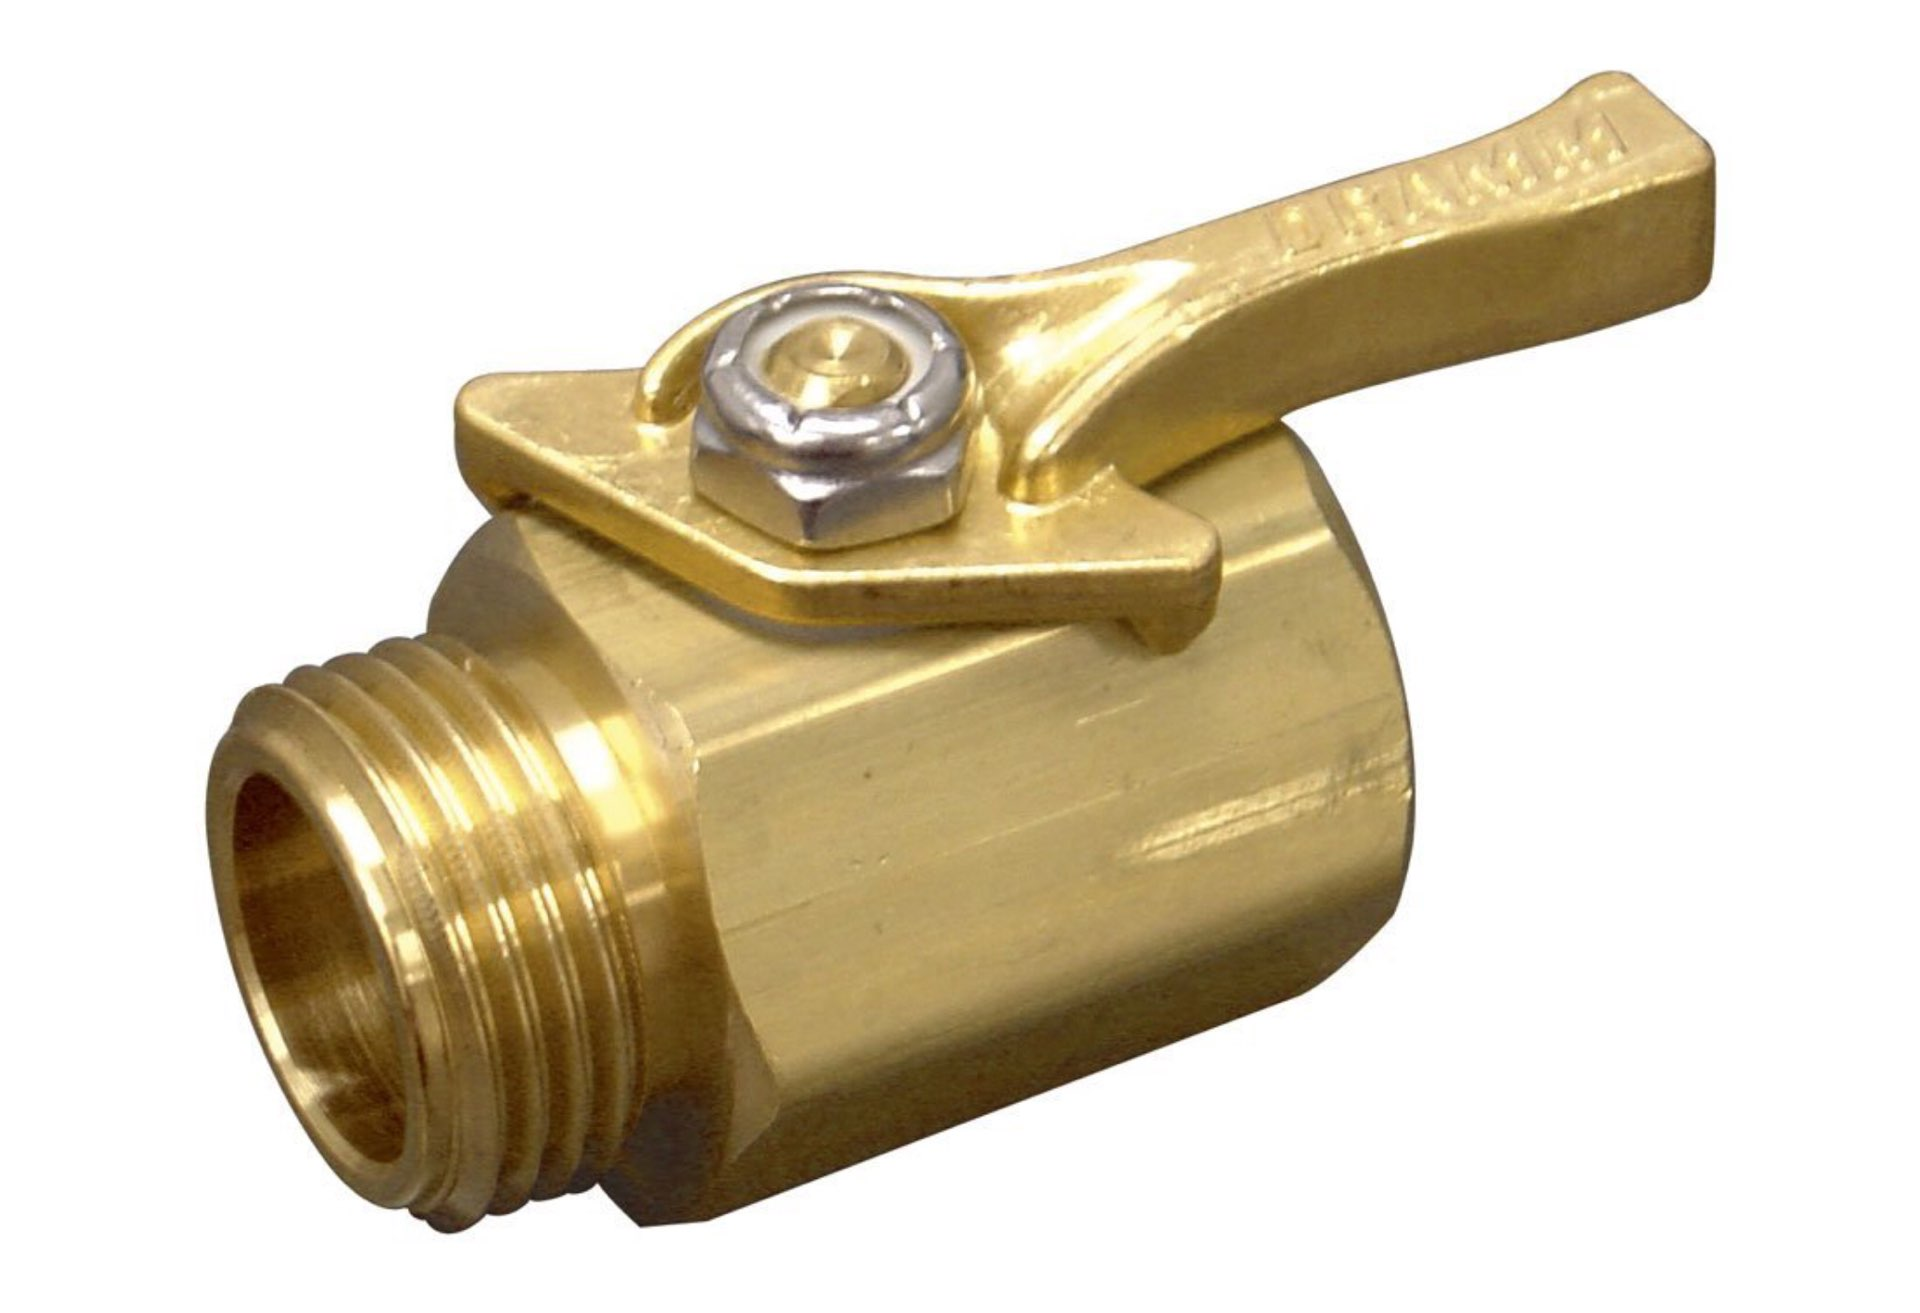 dramm-heavy-duty-brass-garden-hose-shut-off-valve